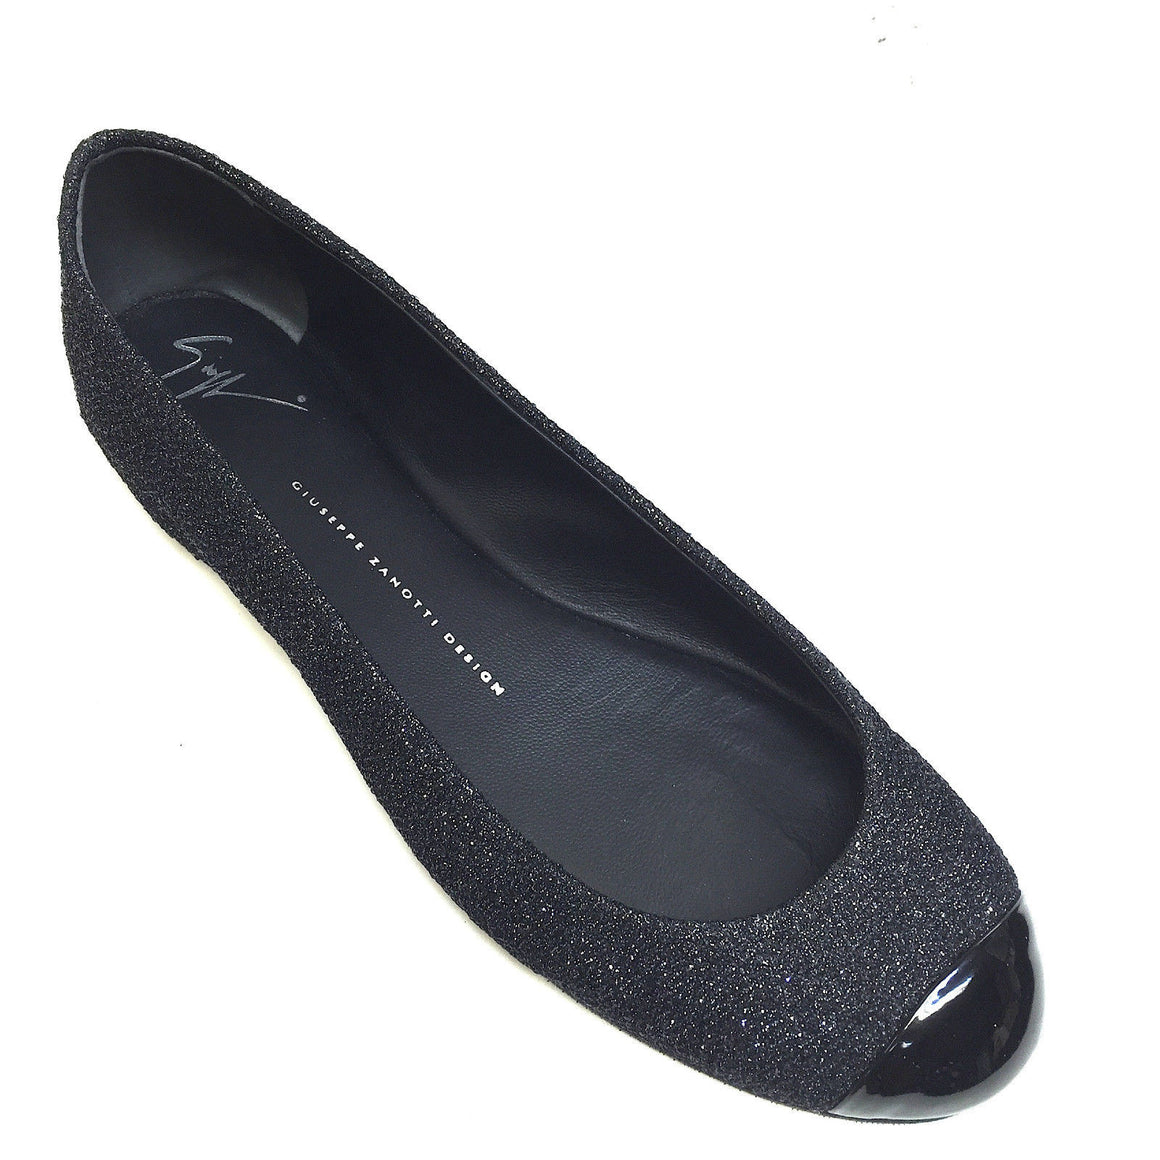 bisbiz.com GIUSEPPE ZANOTTI  Charcoal Glitter Black Patent Leather Toe Ballet Flats Shoes  Size: 39.5 - Bis Luxury Resale